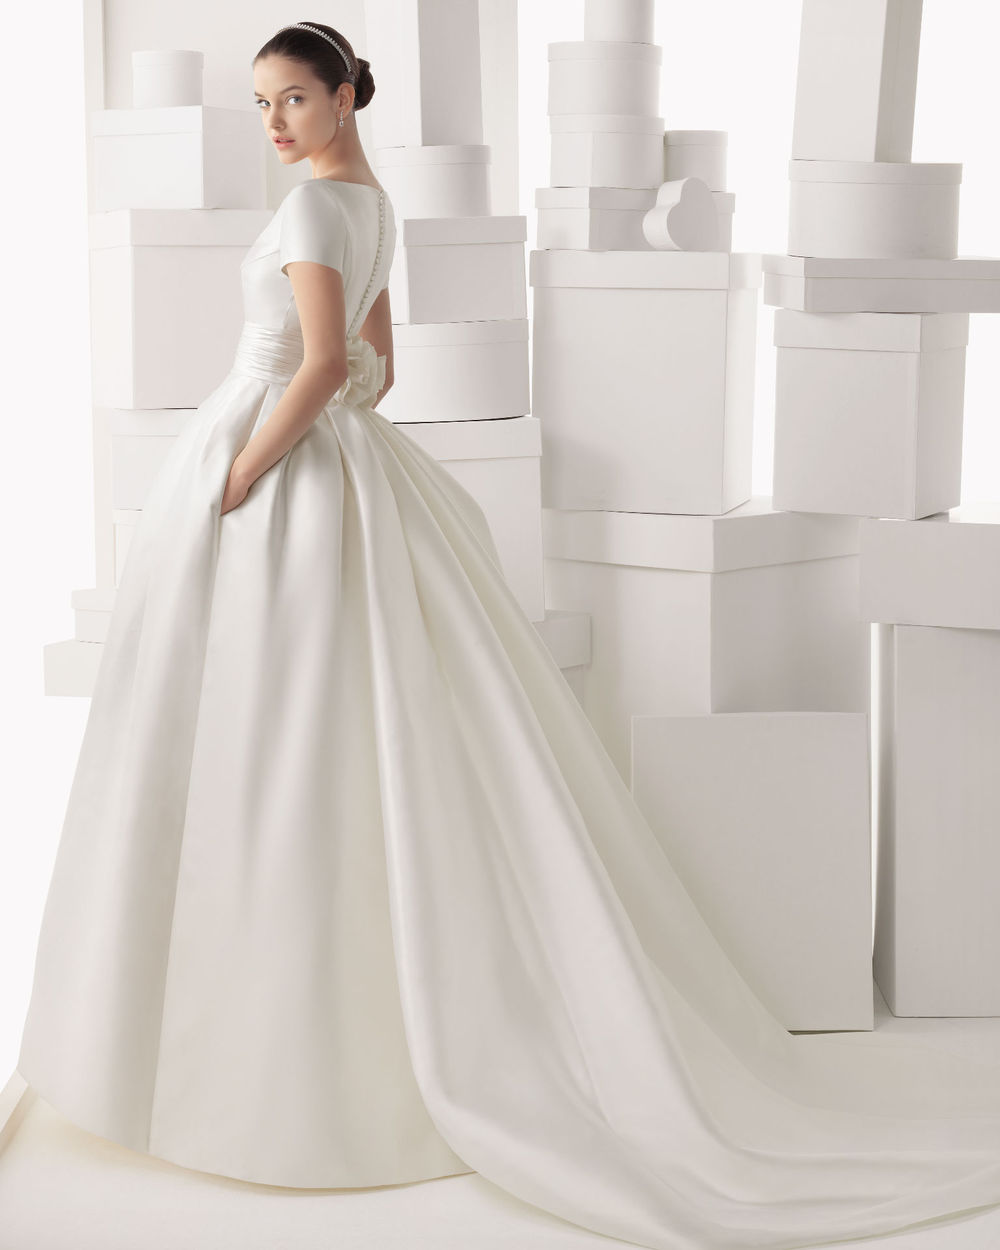 Ball Gown Wedding Dresses With Short Sleeves : Colored ball gown wedding dress with short sleeves